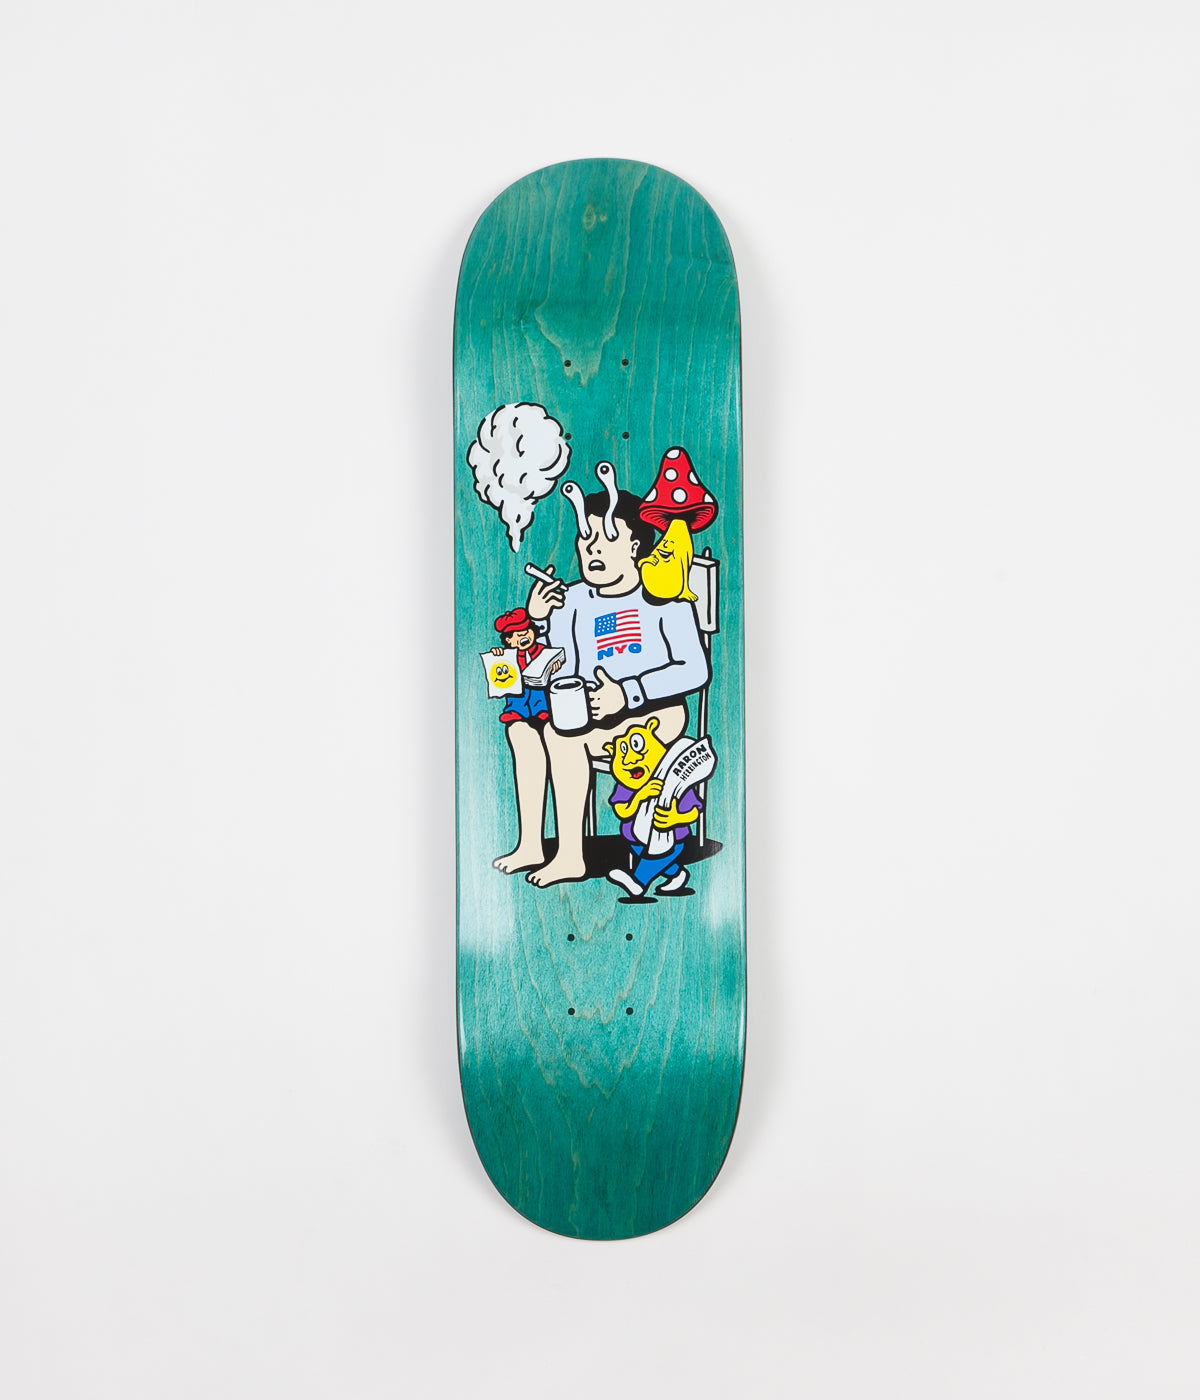 Polar Aaron Herrington Just Like Drugs Deck - 8.25""